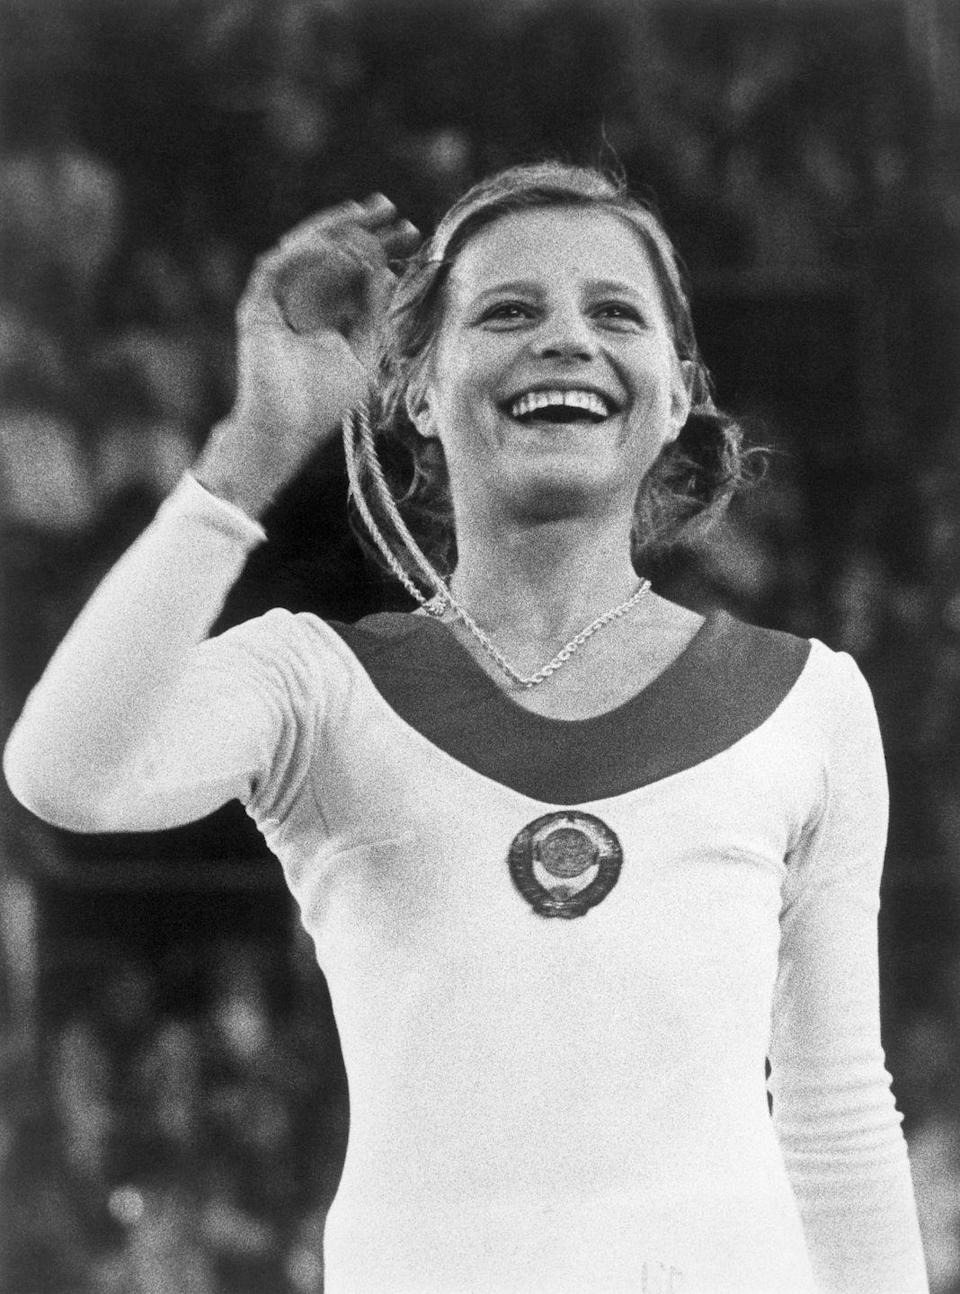 """<p>At just 17 years old, Olga Korbut dominated the podium with four medal wins at the 1972 Munich Olympics. The athlete who competed for the Soviet Union became one of the biggest names in gymnastics thanks to her artistic floor routines and daring stunts—like the <a href=""""https://www.nydailynews.com/sports/olympics-2012/korbut-flip-move-dangerous-today-olympic-gymnasts-aren-allowed-attempt-article-1.1134730"""" rel=""""nofollow noopener"""" target=""""_blank"""" data-ylk=""""slk:Korbut Flip"""" class=""""link rapid-noclick-resp"""">Korbut Flip</a>, which is now banned from competition. </p>"""